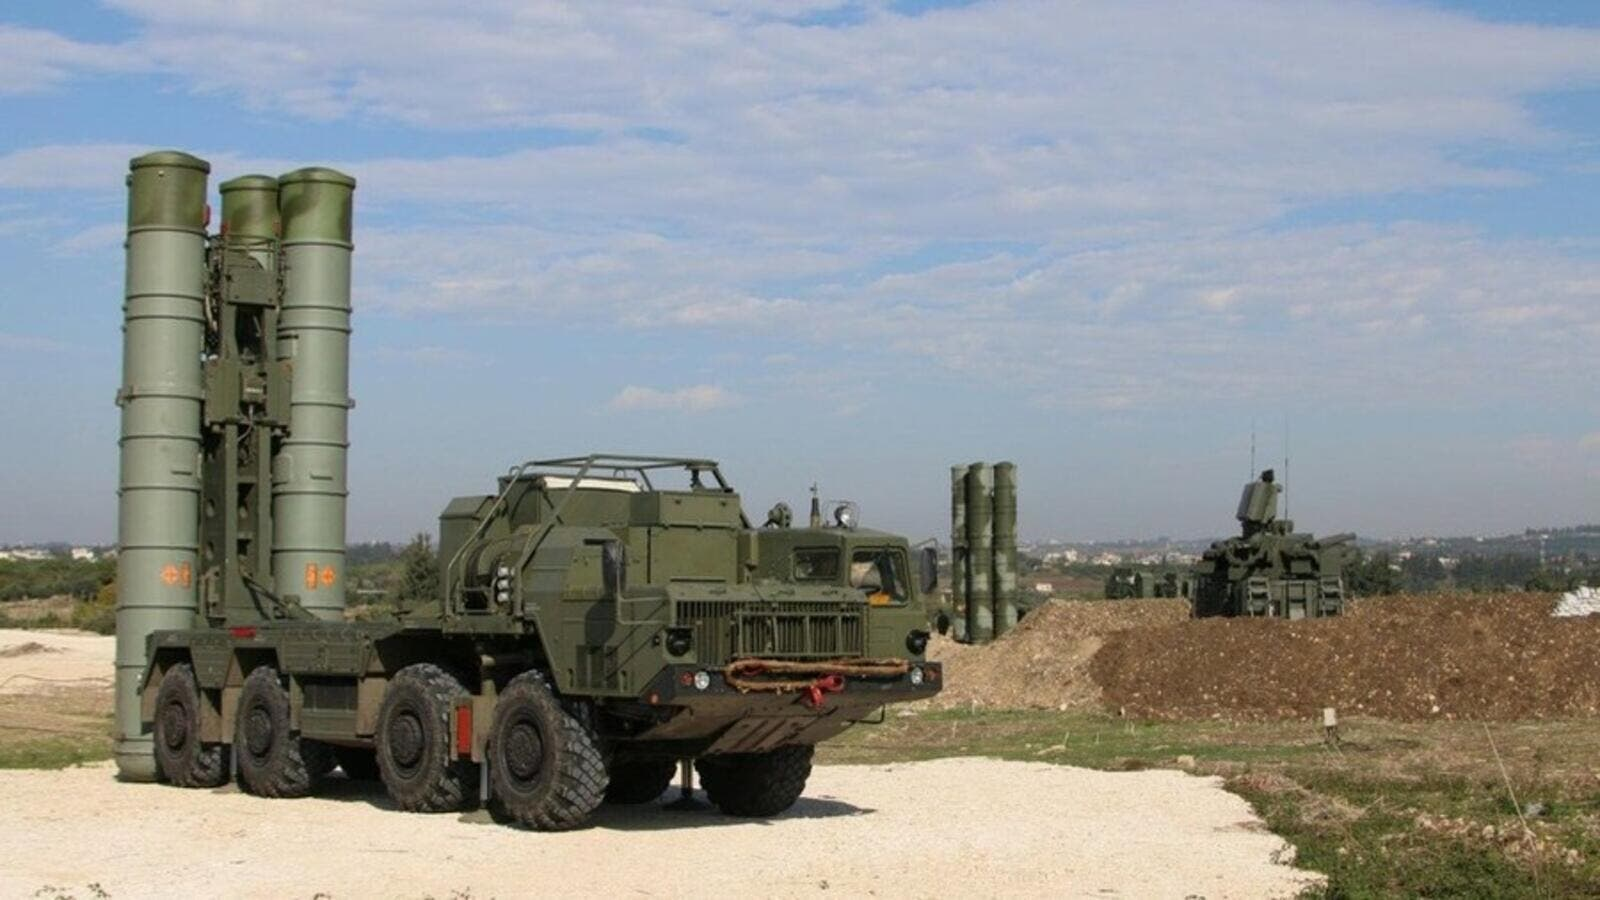 Russian S-400 air defence missile systems deployed at the Hmeimim airbase in Syria. (AFP/File)